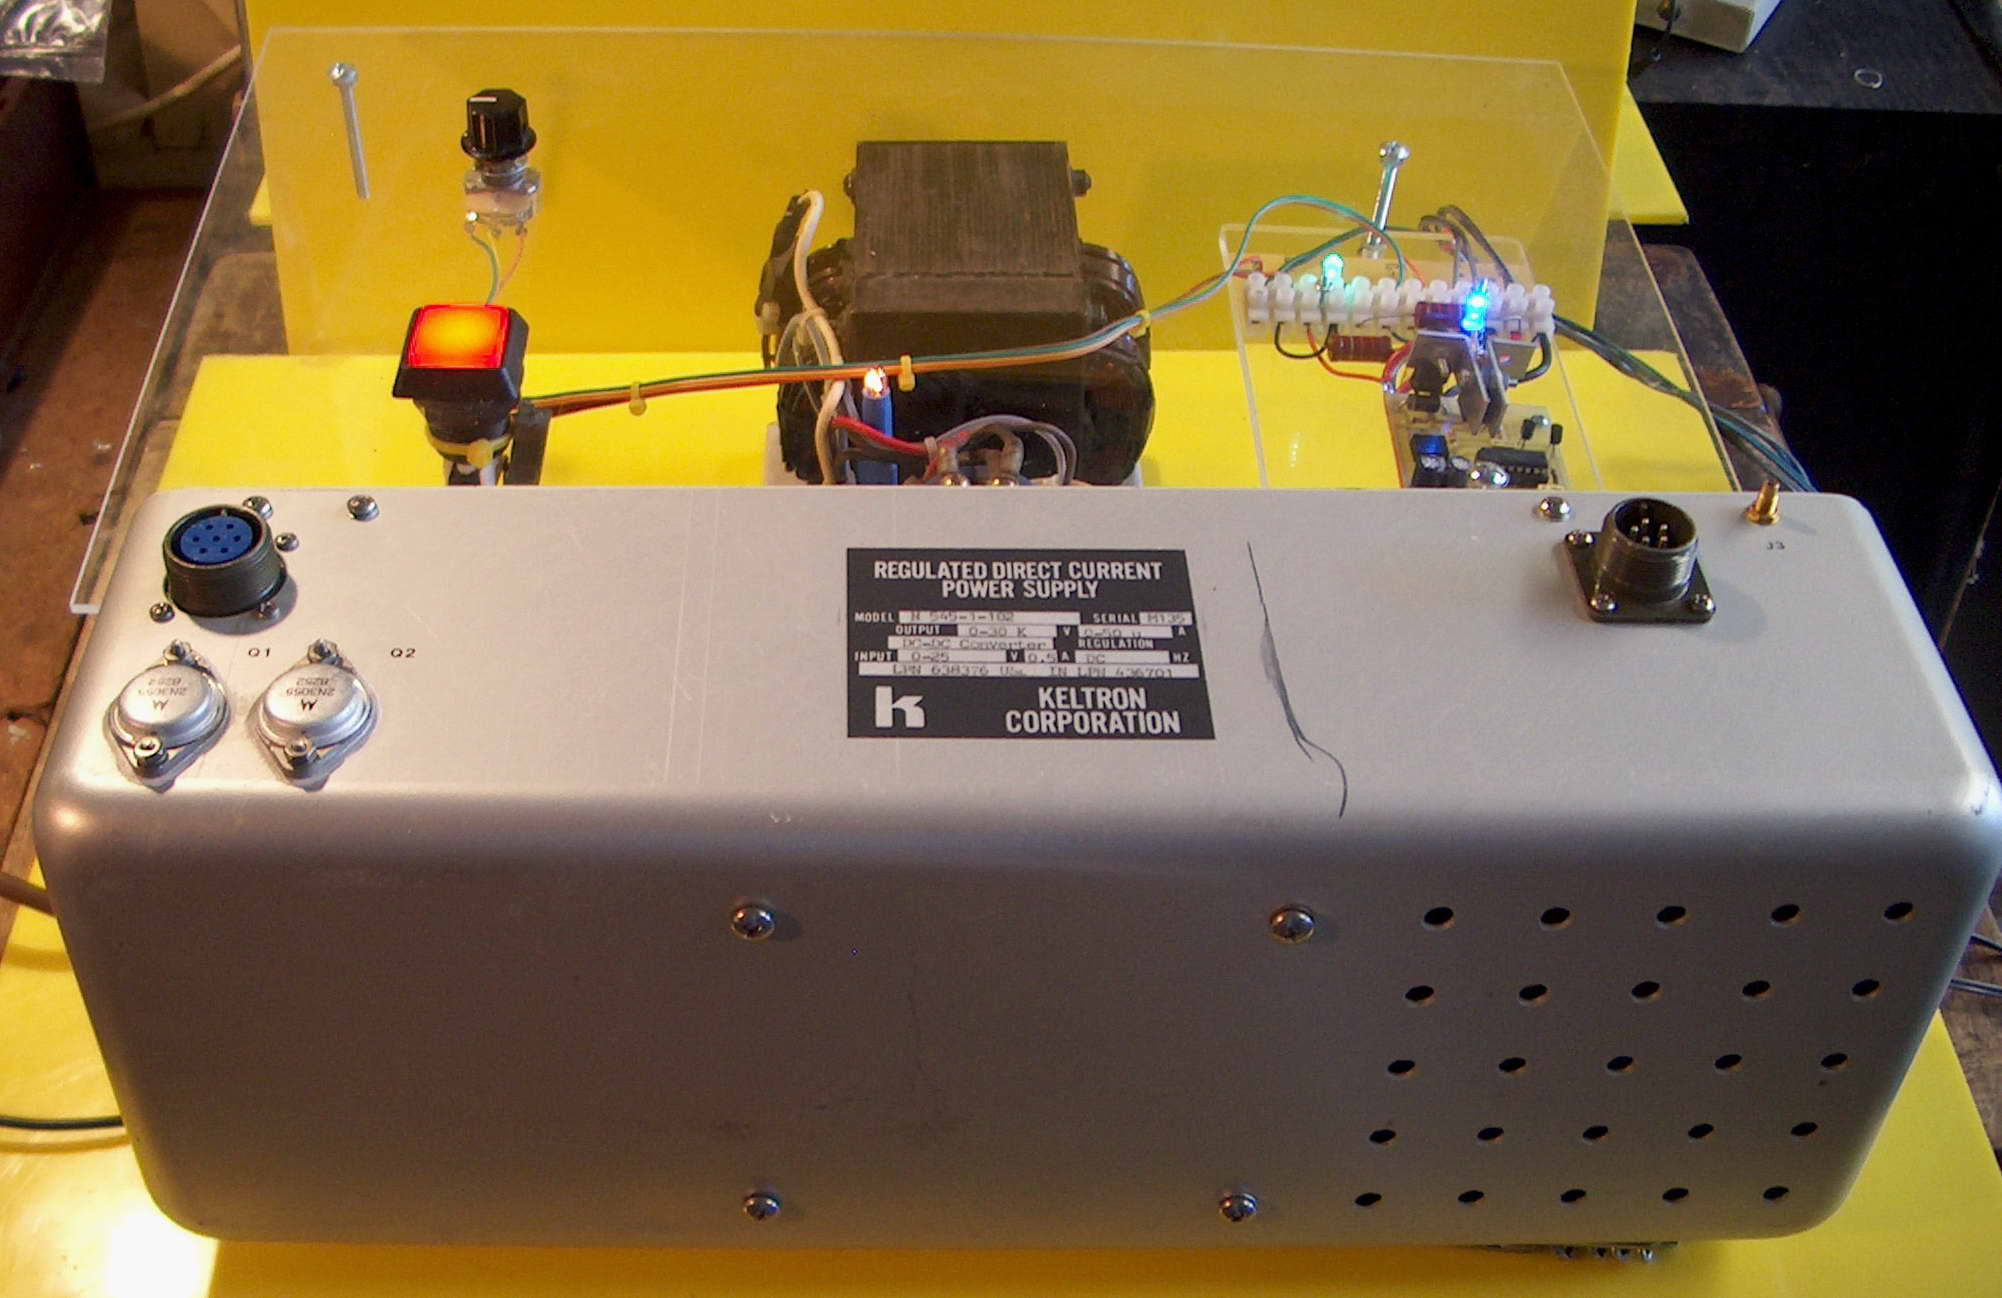 Lifters Kv High Voltage Dc Power Supply With Neat Trick For Switching Polarity Click To Enlarge This Is The Setup Using A 30